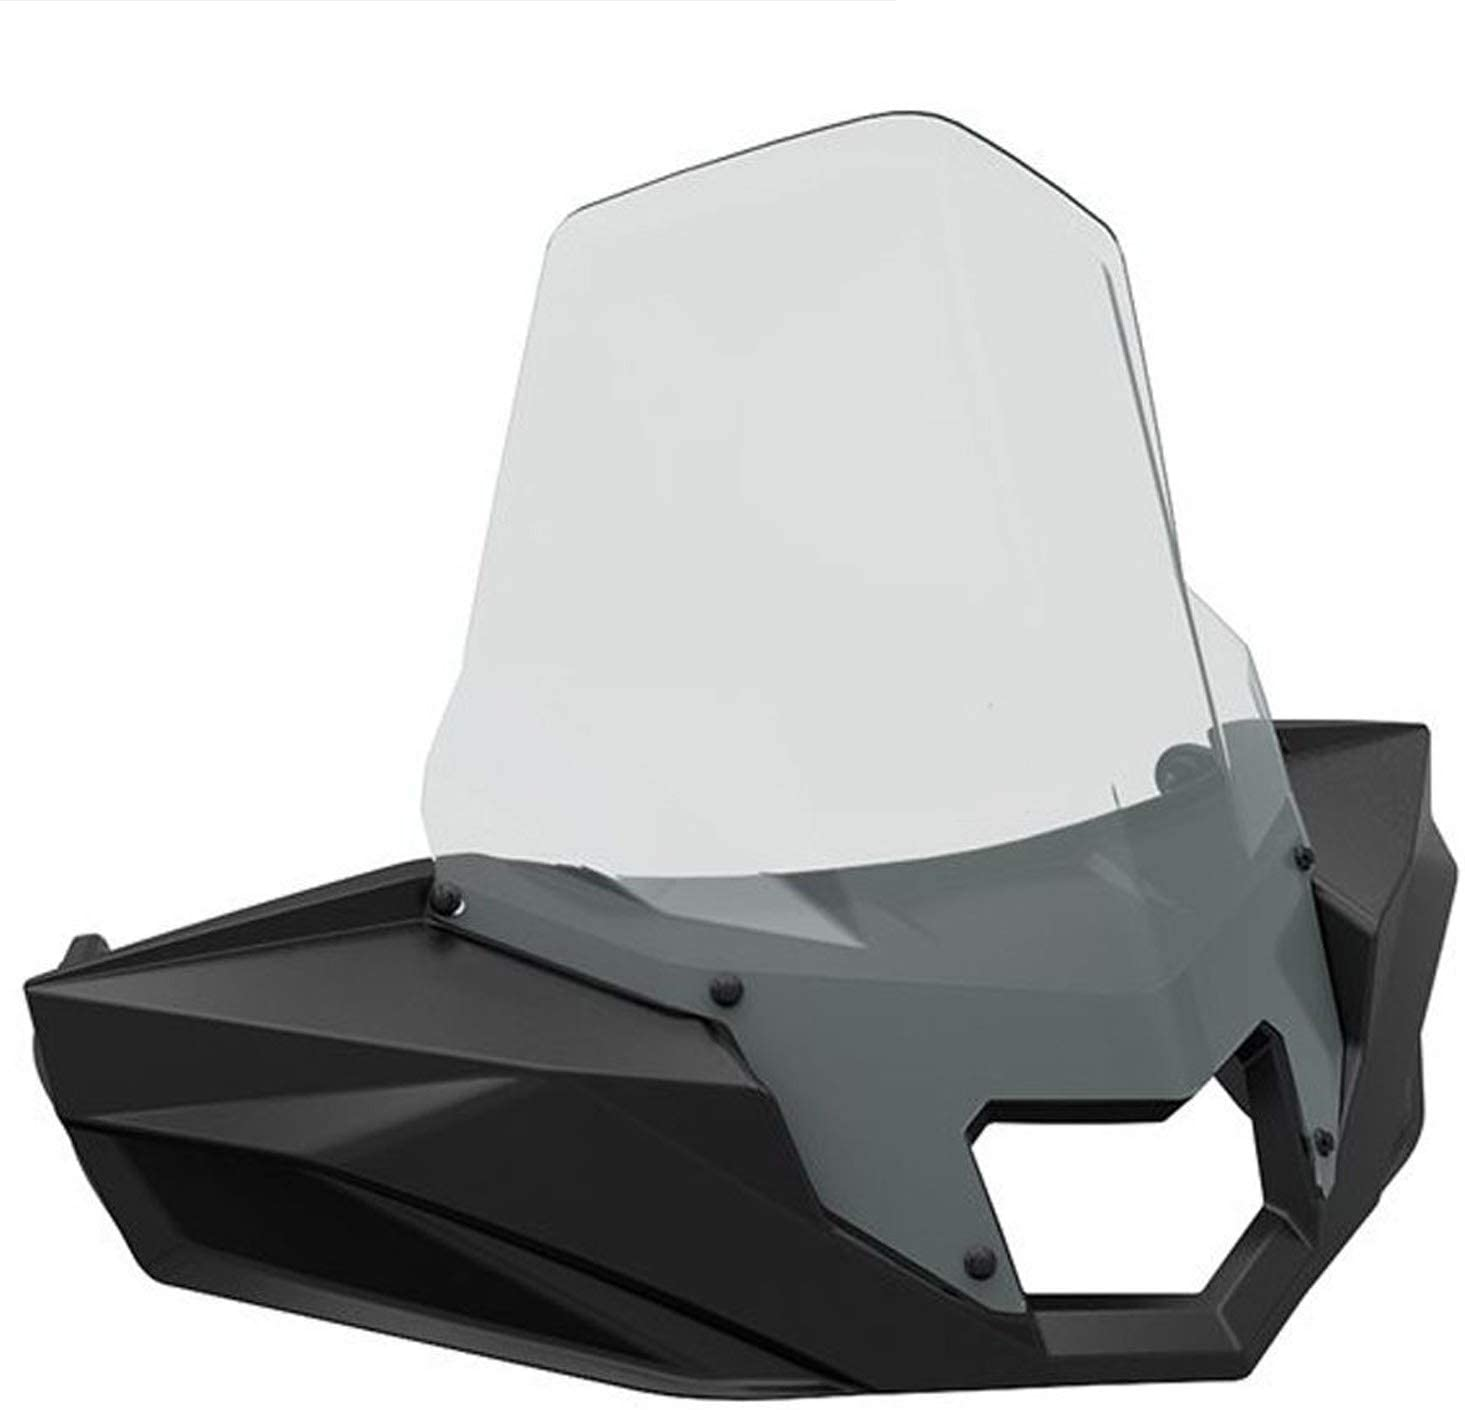 Polaris New OEM Sportsman Ultimate Series Midview Windshield, 2882151